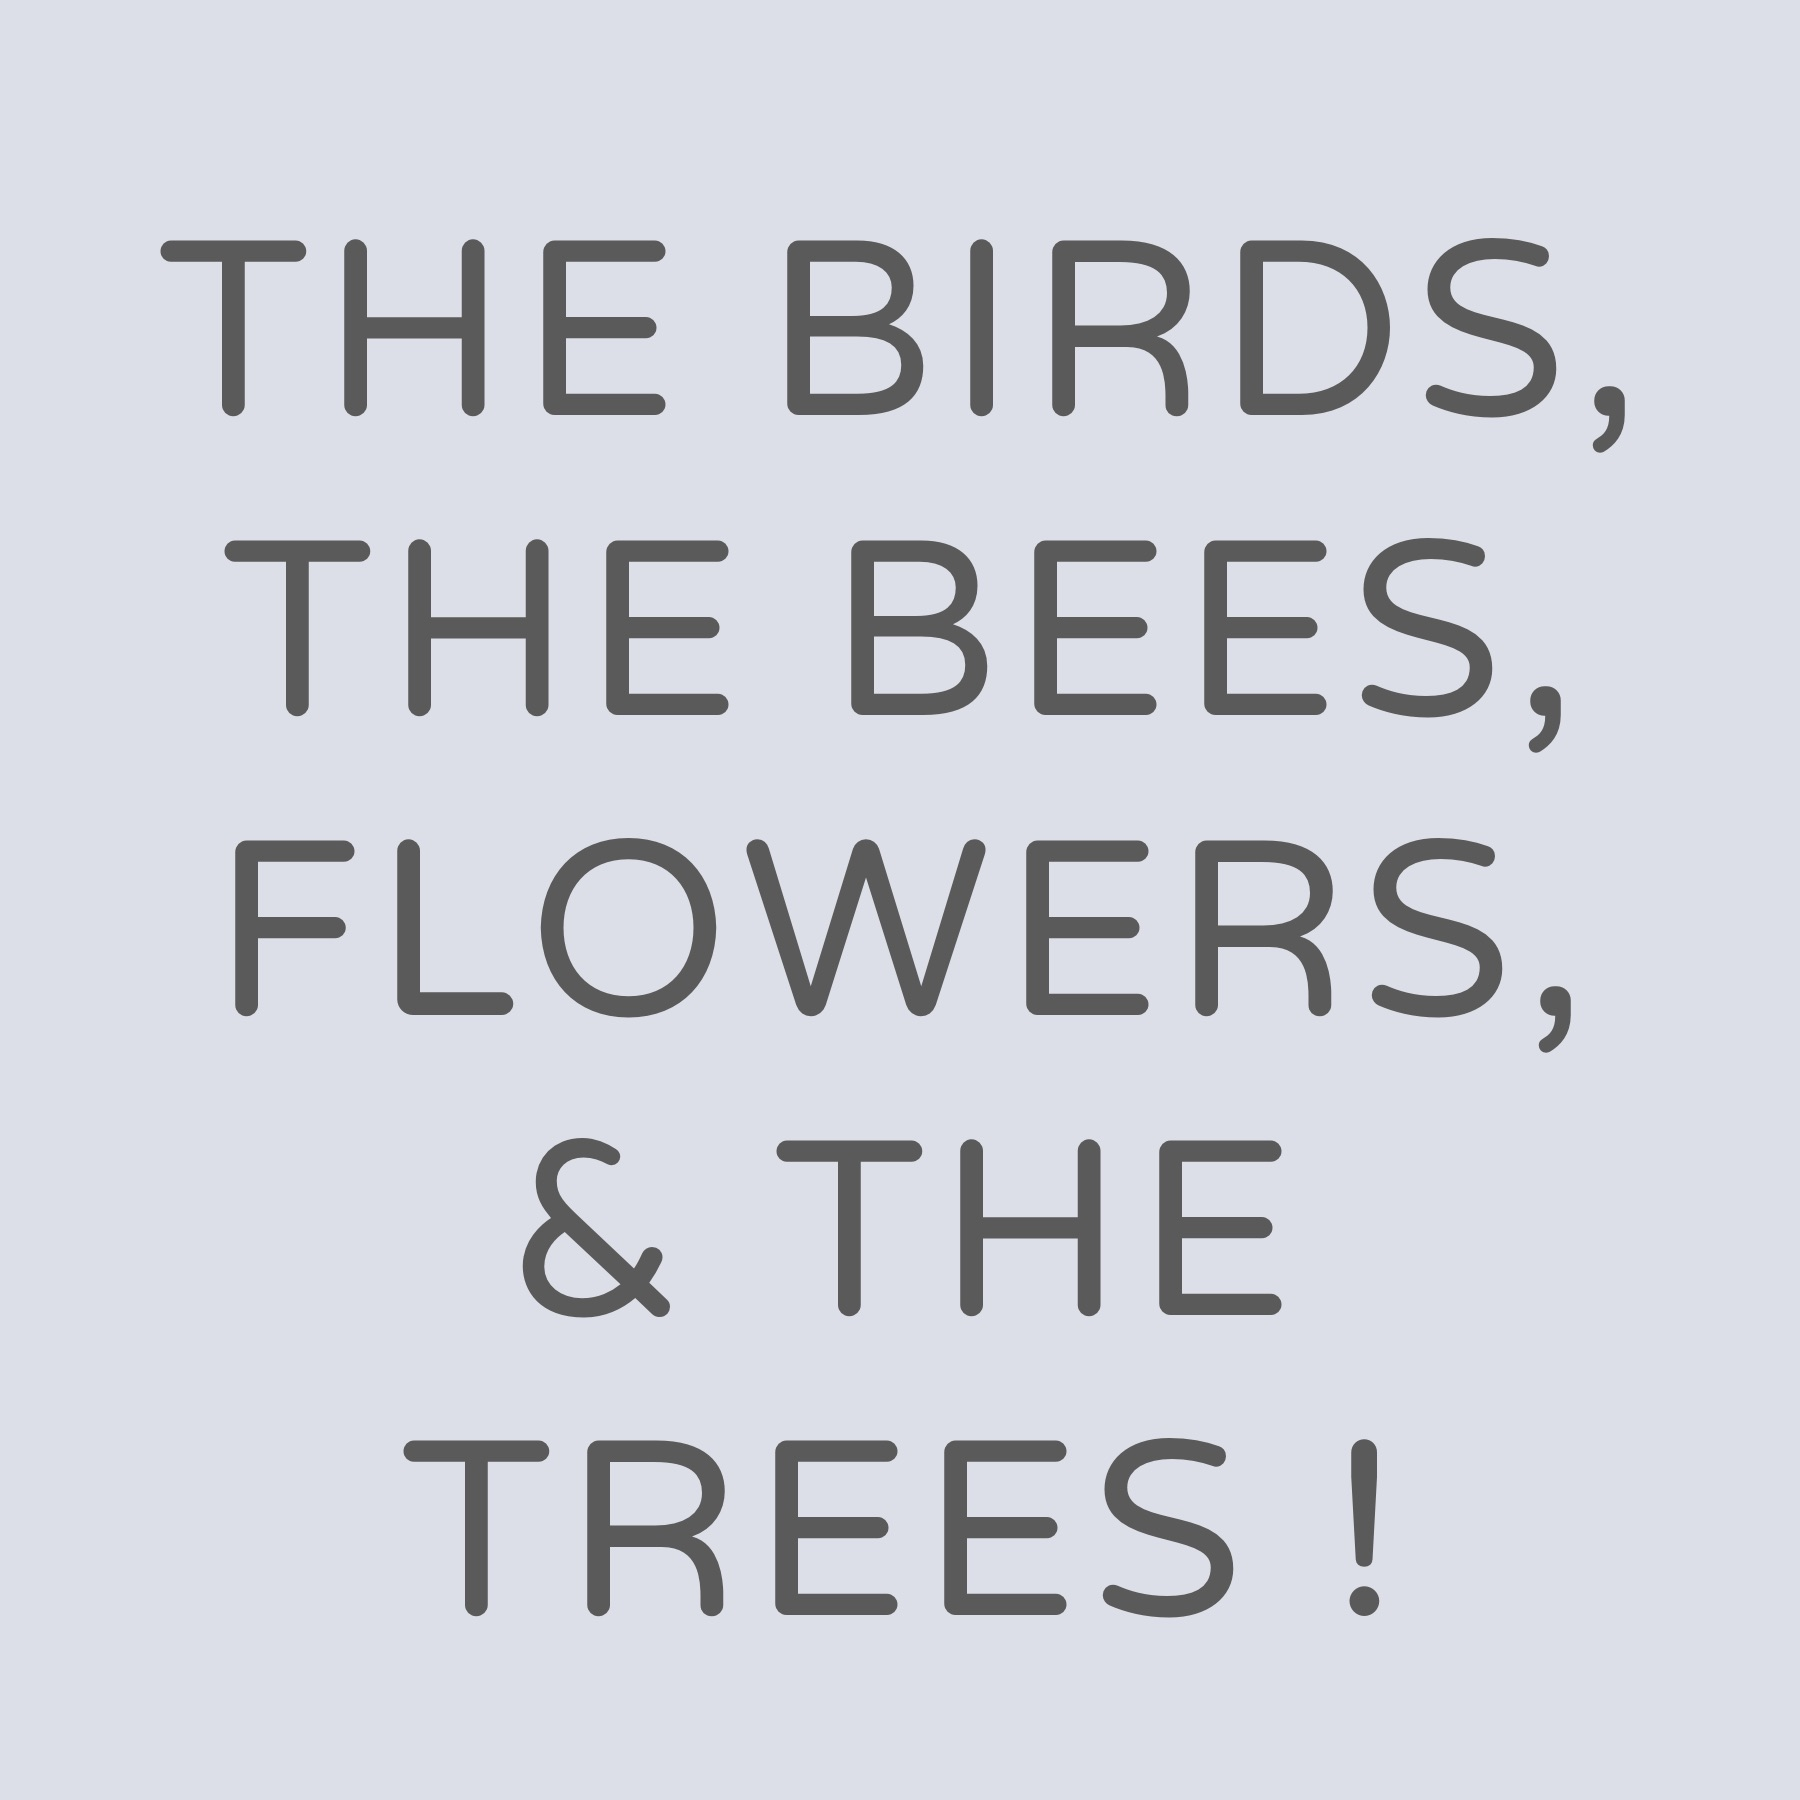 Birds Bees Flowers Trees.jpg